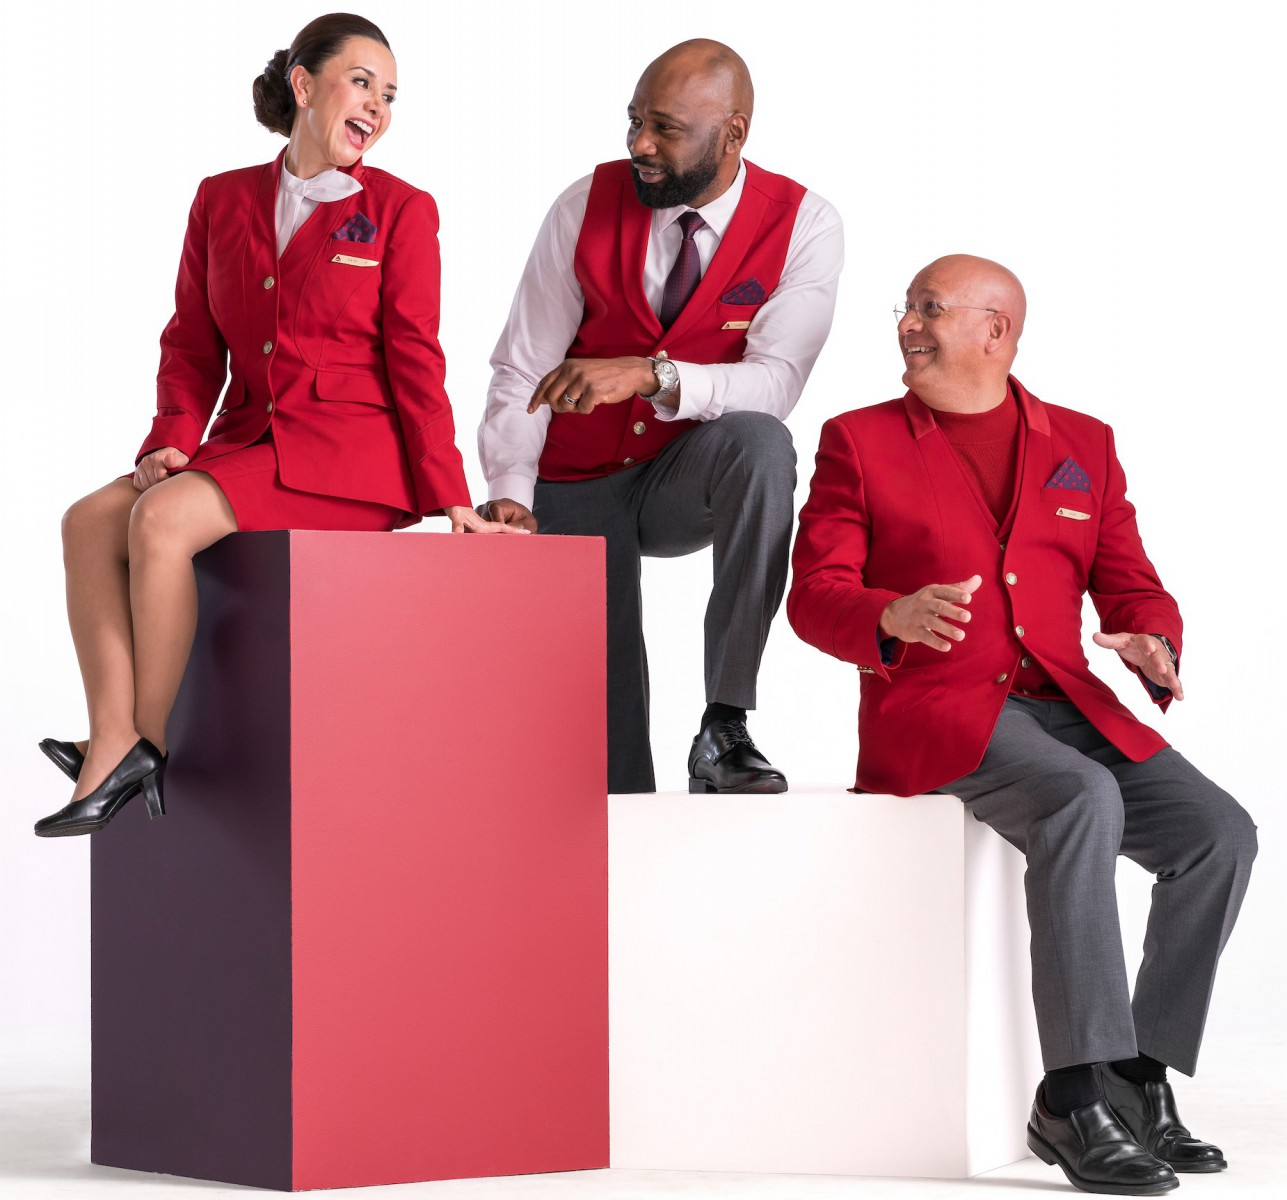 Delta logistsics change uniforms new